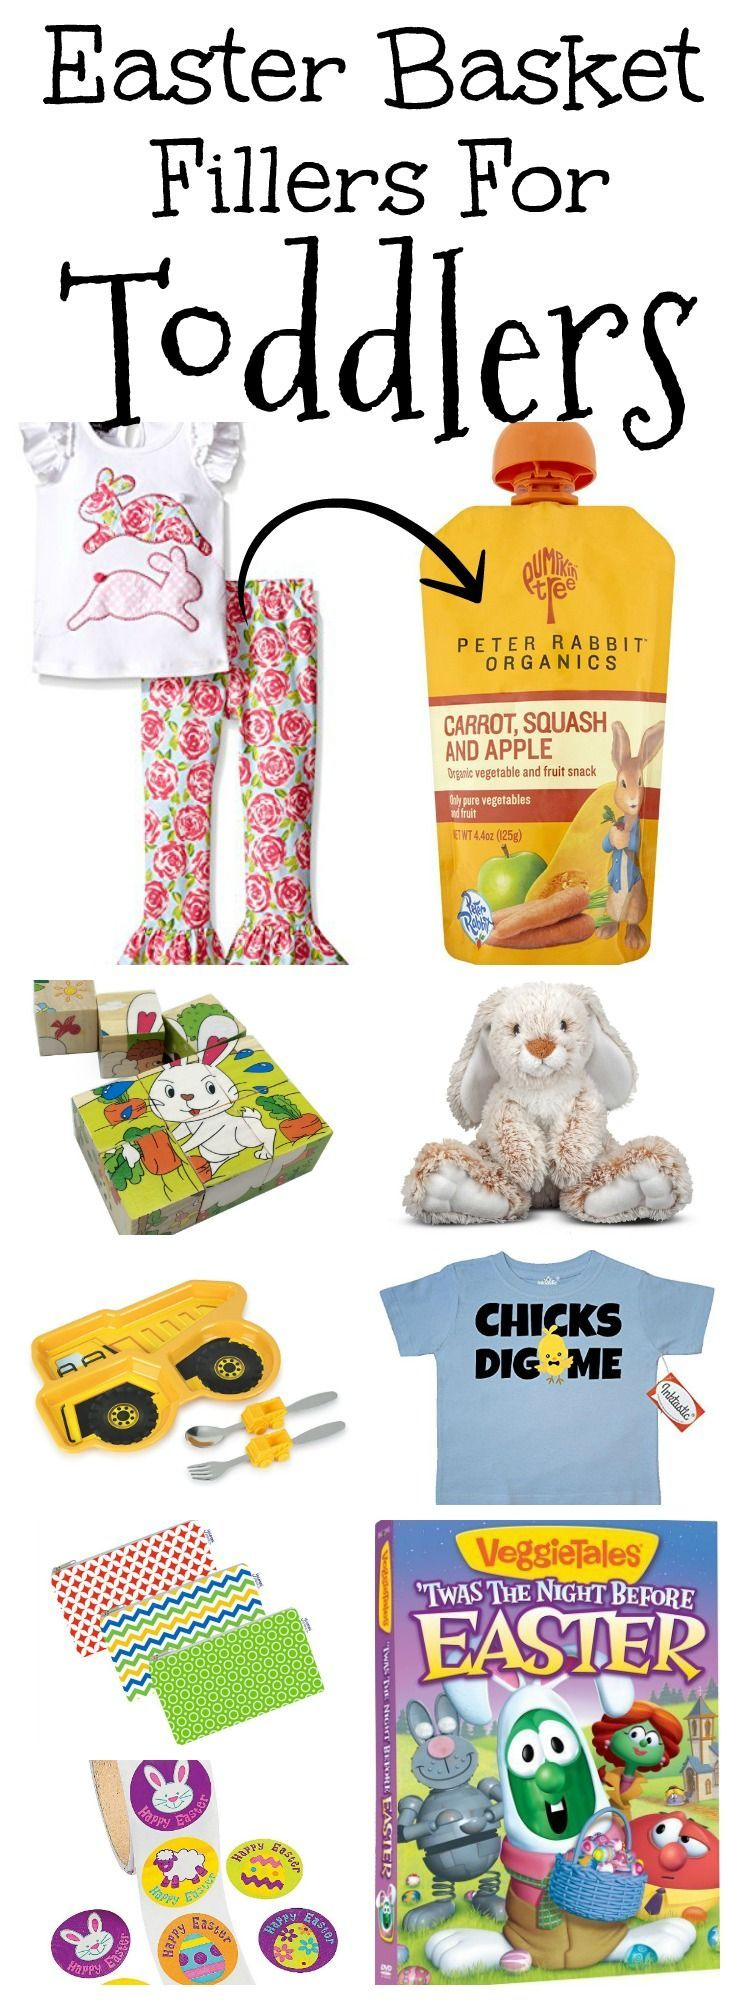 Easter basket fillers for toddlers easter baskets easter and 20 easter basket filler ideas for toddlers negle Choice Image